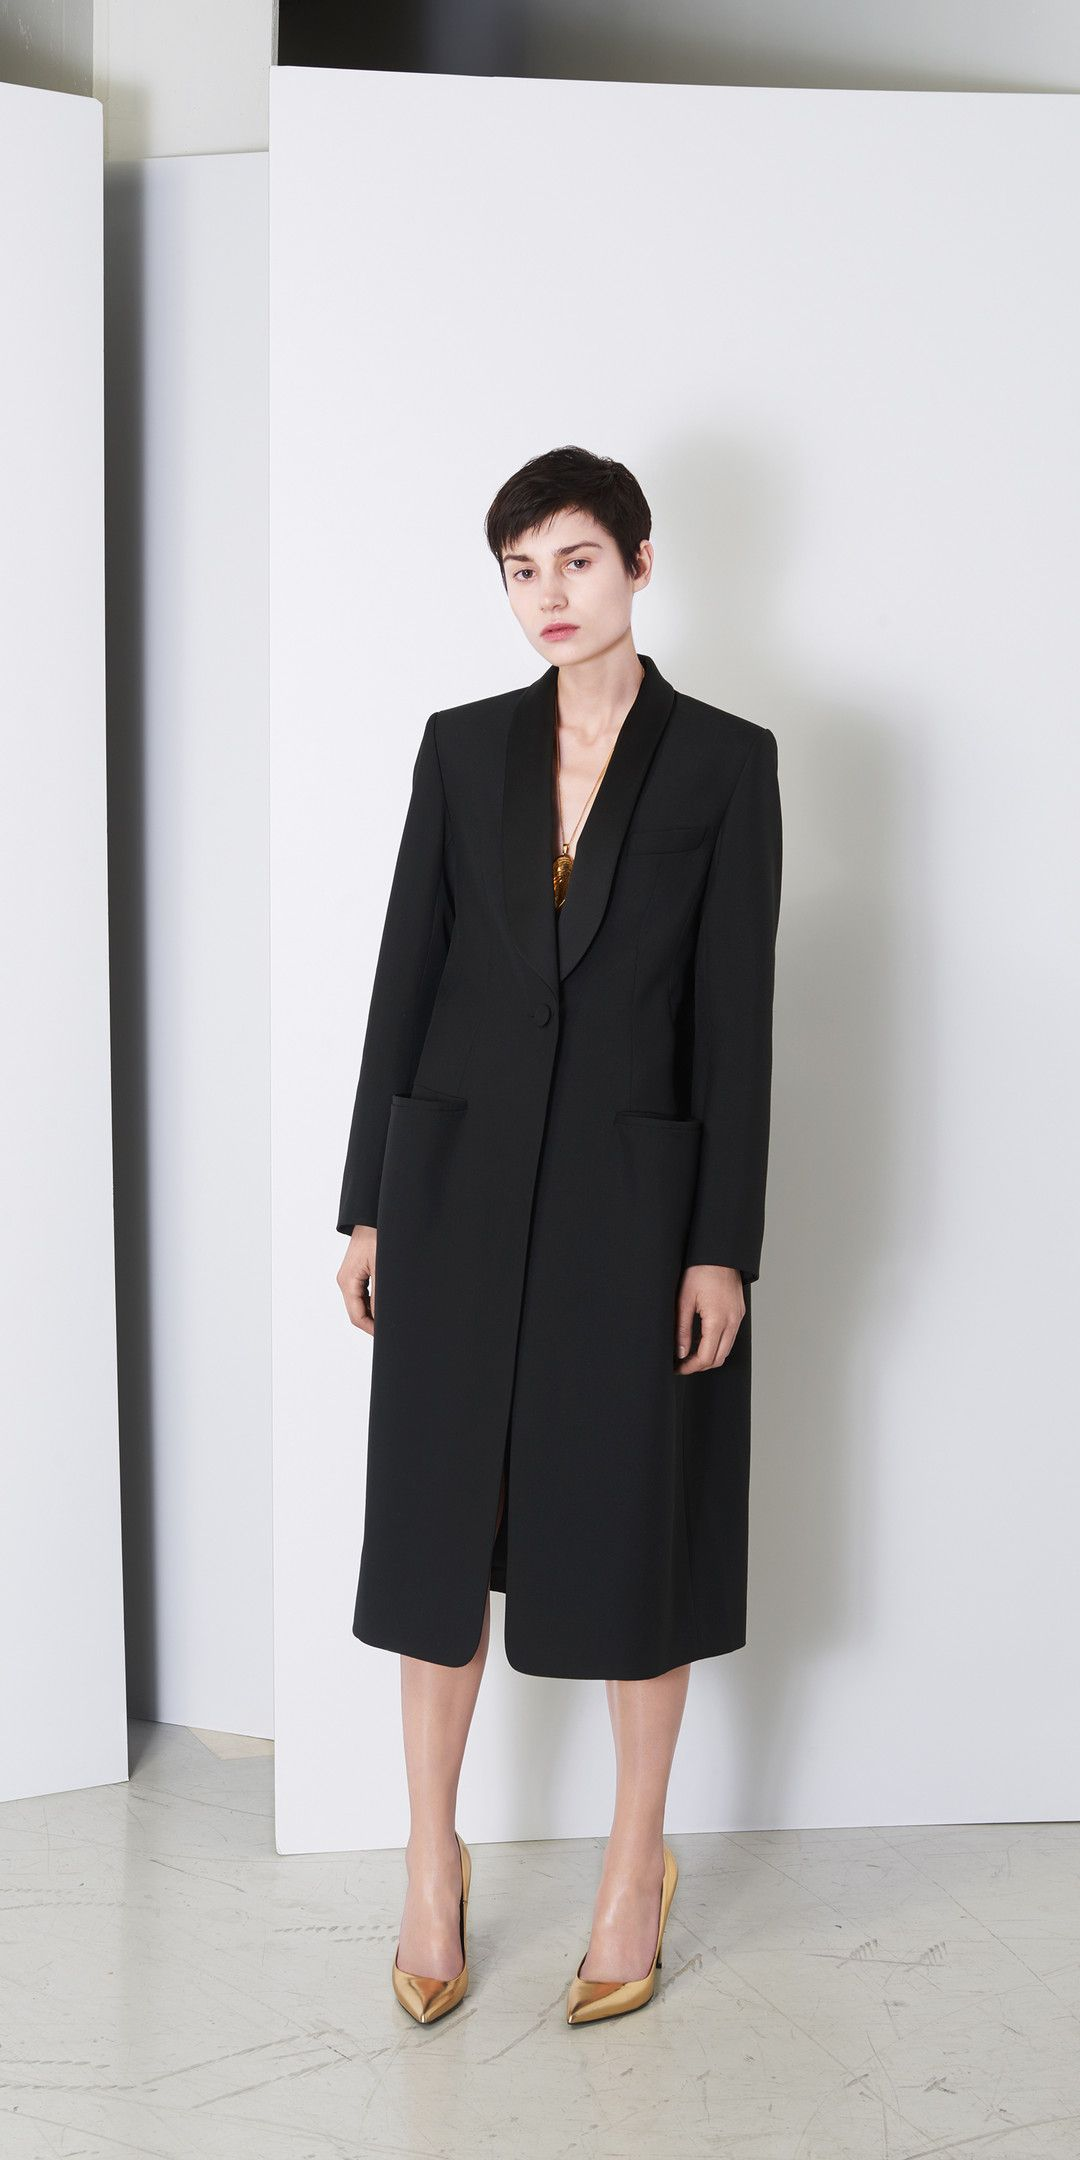 Balenciaga Coats for Women - Discover the latest collection at the official  Balenciaga online store. fcd2de246